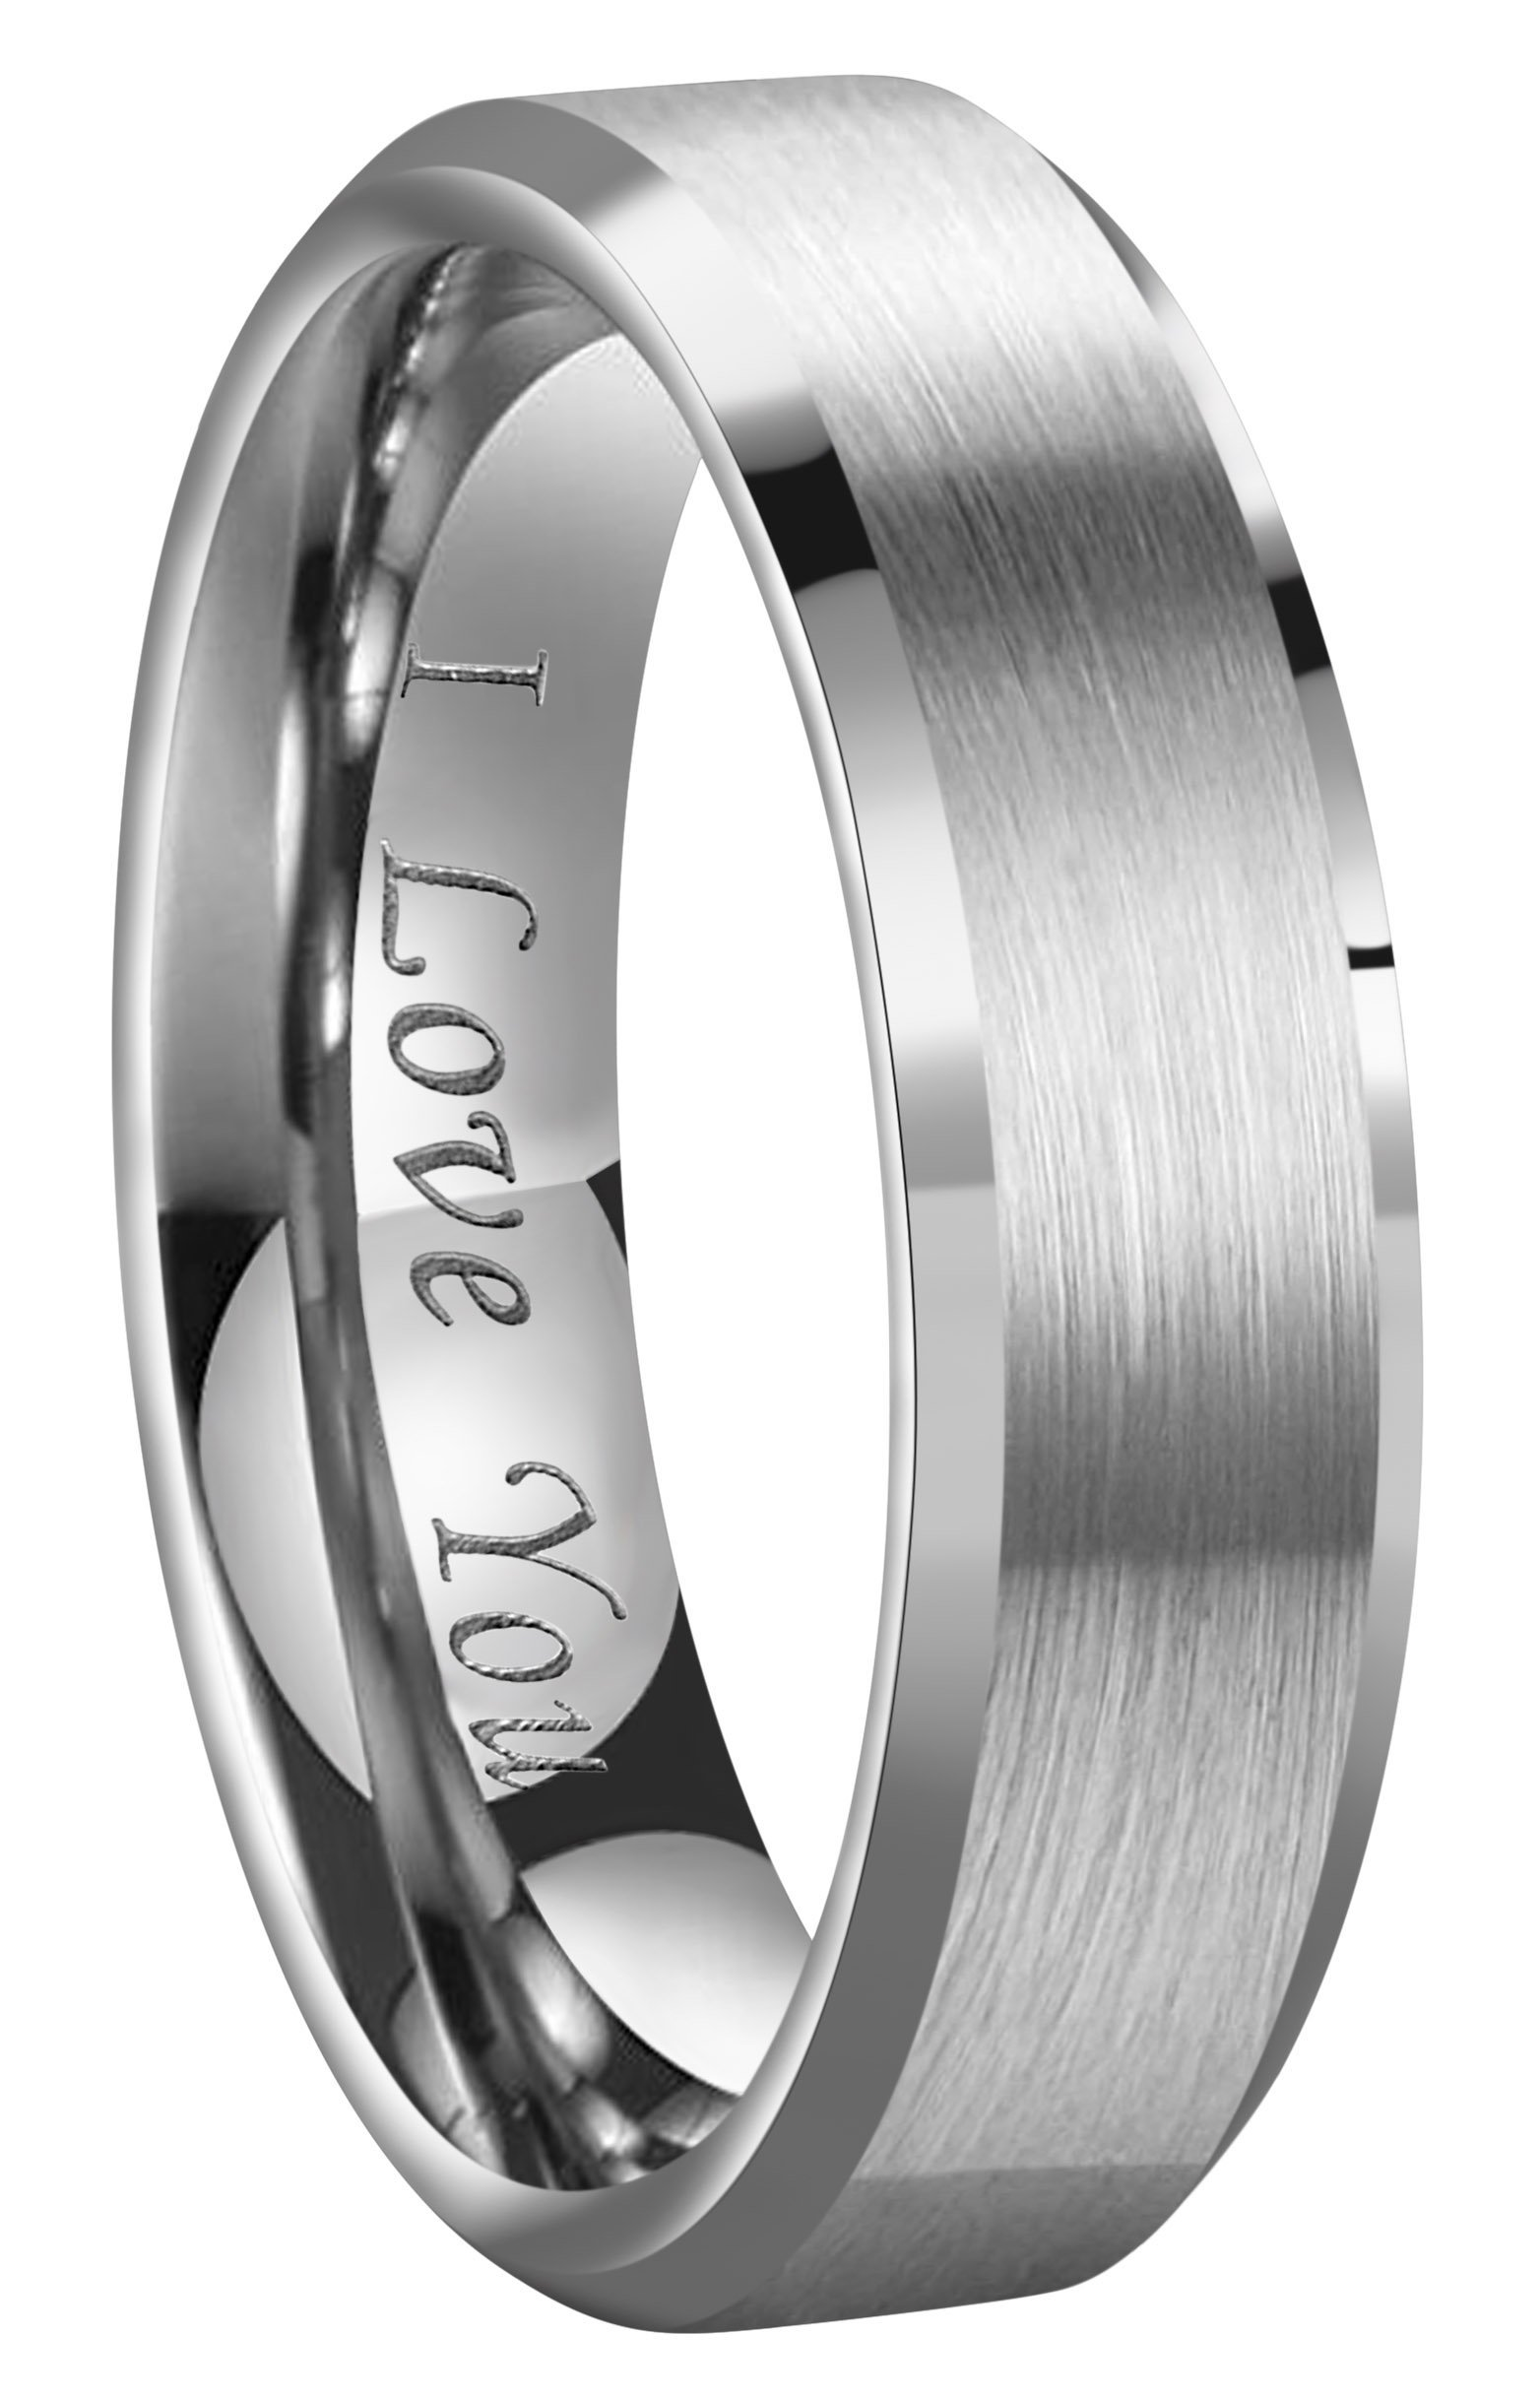 CROWNAL 4mm/6mm/8mm Tungsten Couple Wedding Bands Rings Men Women Brushed Finish Beveled Edges Engraved I Love You Size 4 To 17 (6mm,10)